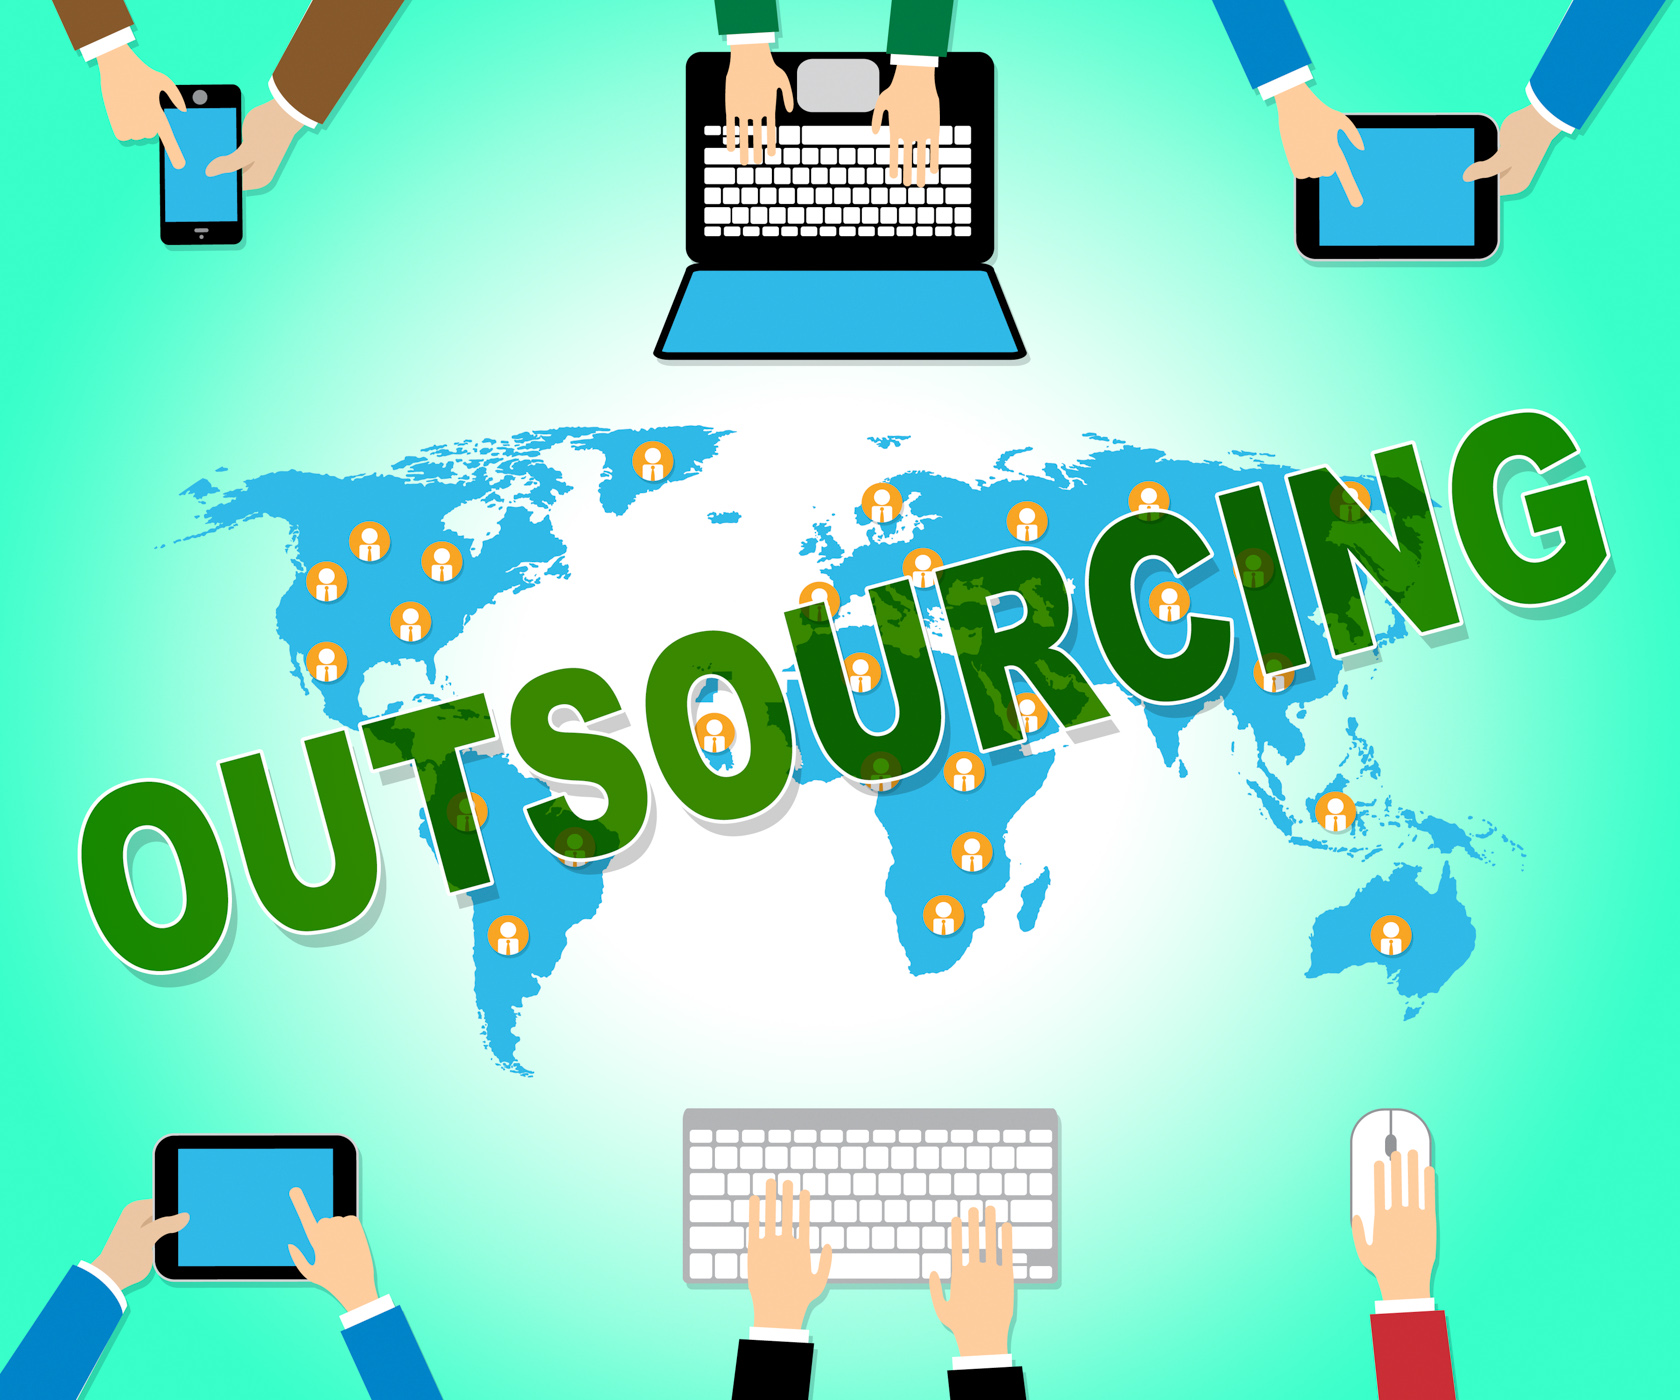 Outsourcing Online Represents Web Site And Contractor, Contract, Outsourcing, Websites, Website, HQ Photo